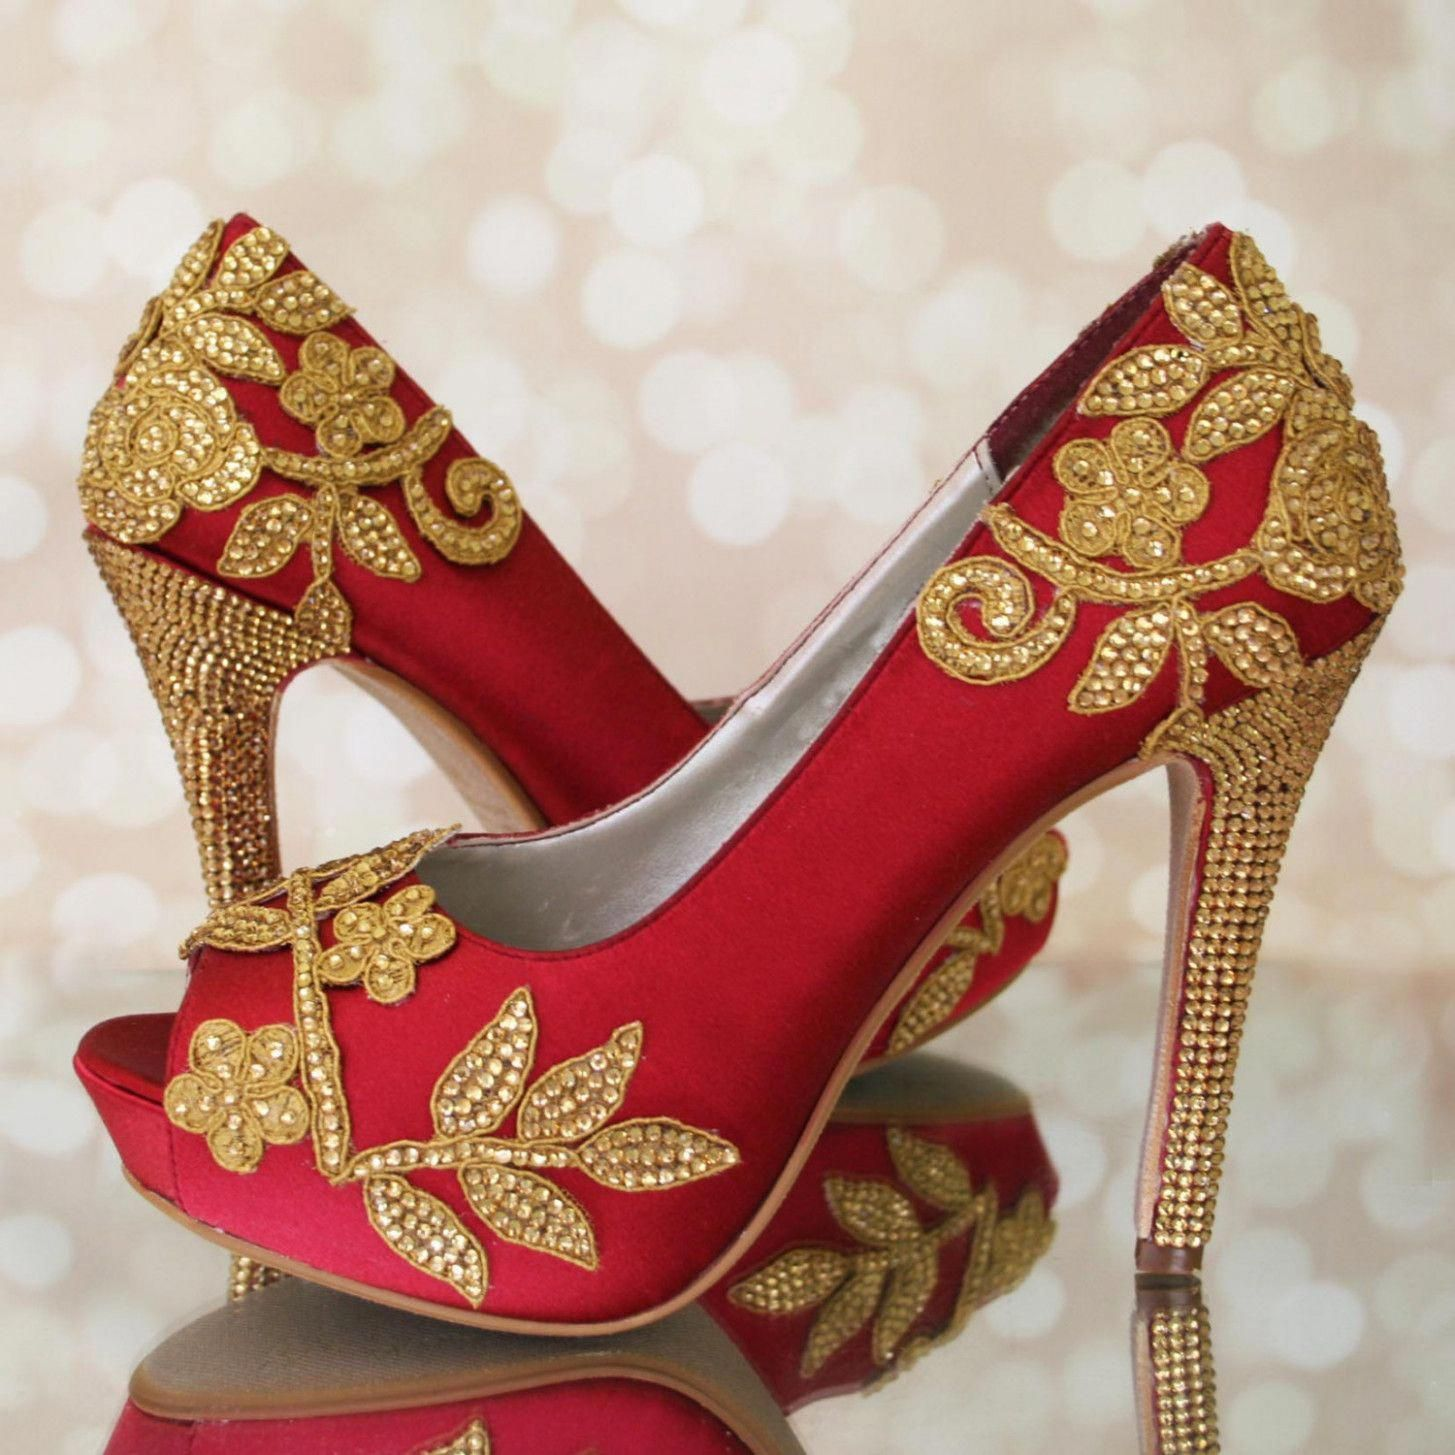 Indian Wedding Indian Bride Red Wedding Shoes High Heel Indian